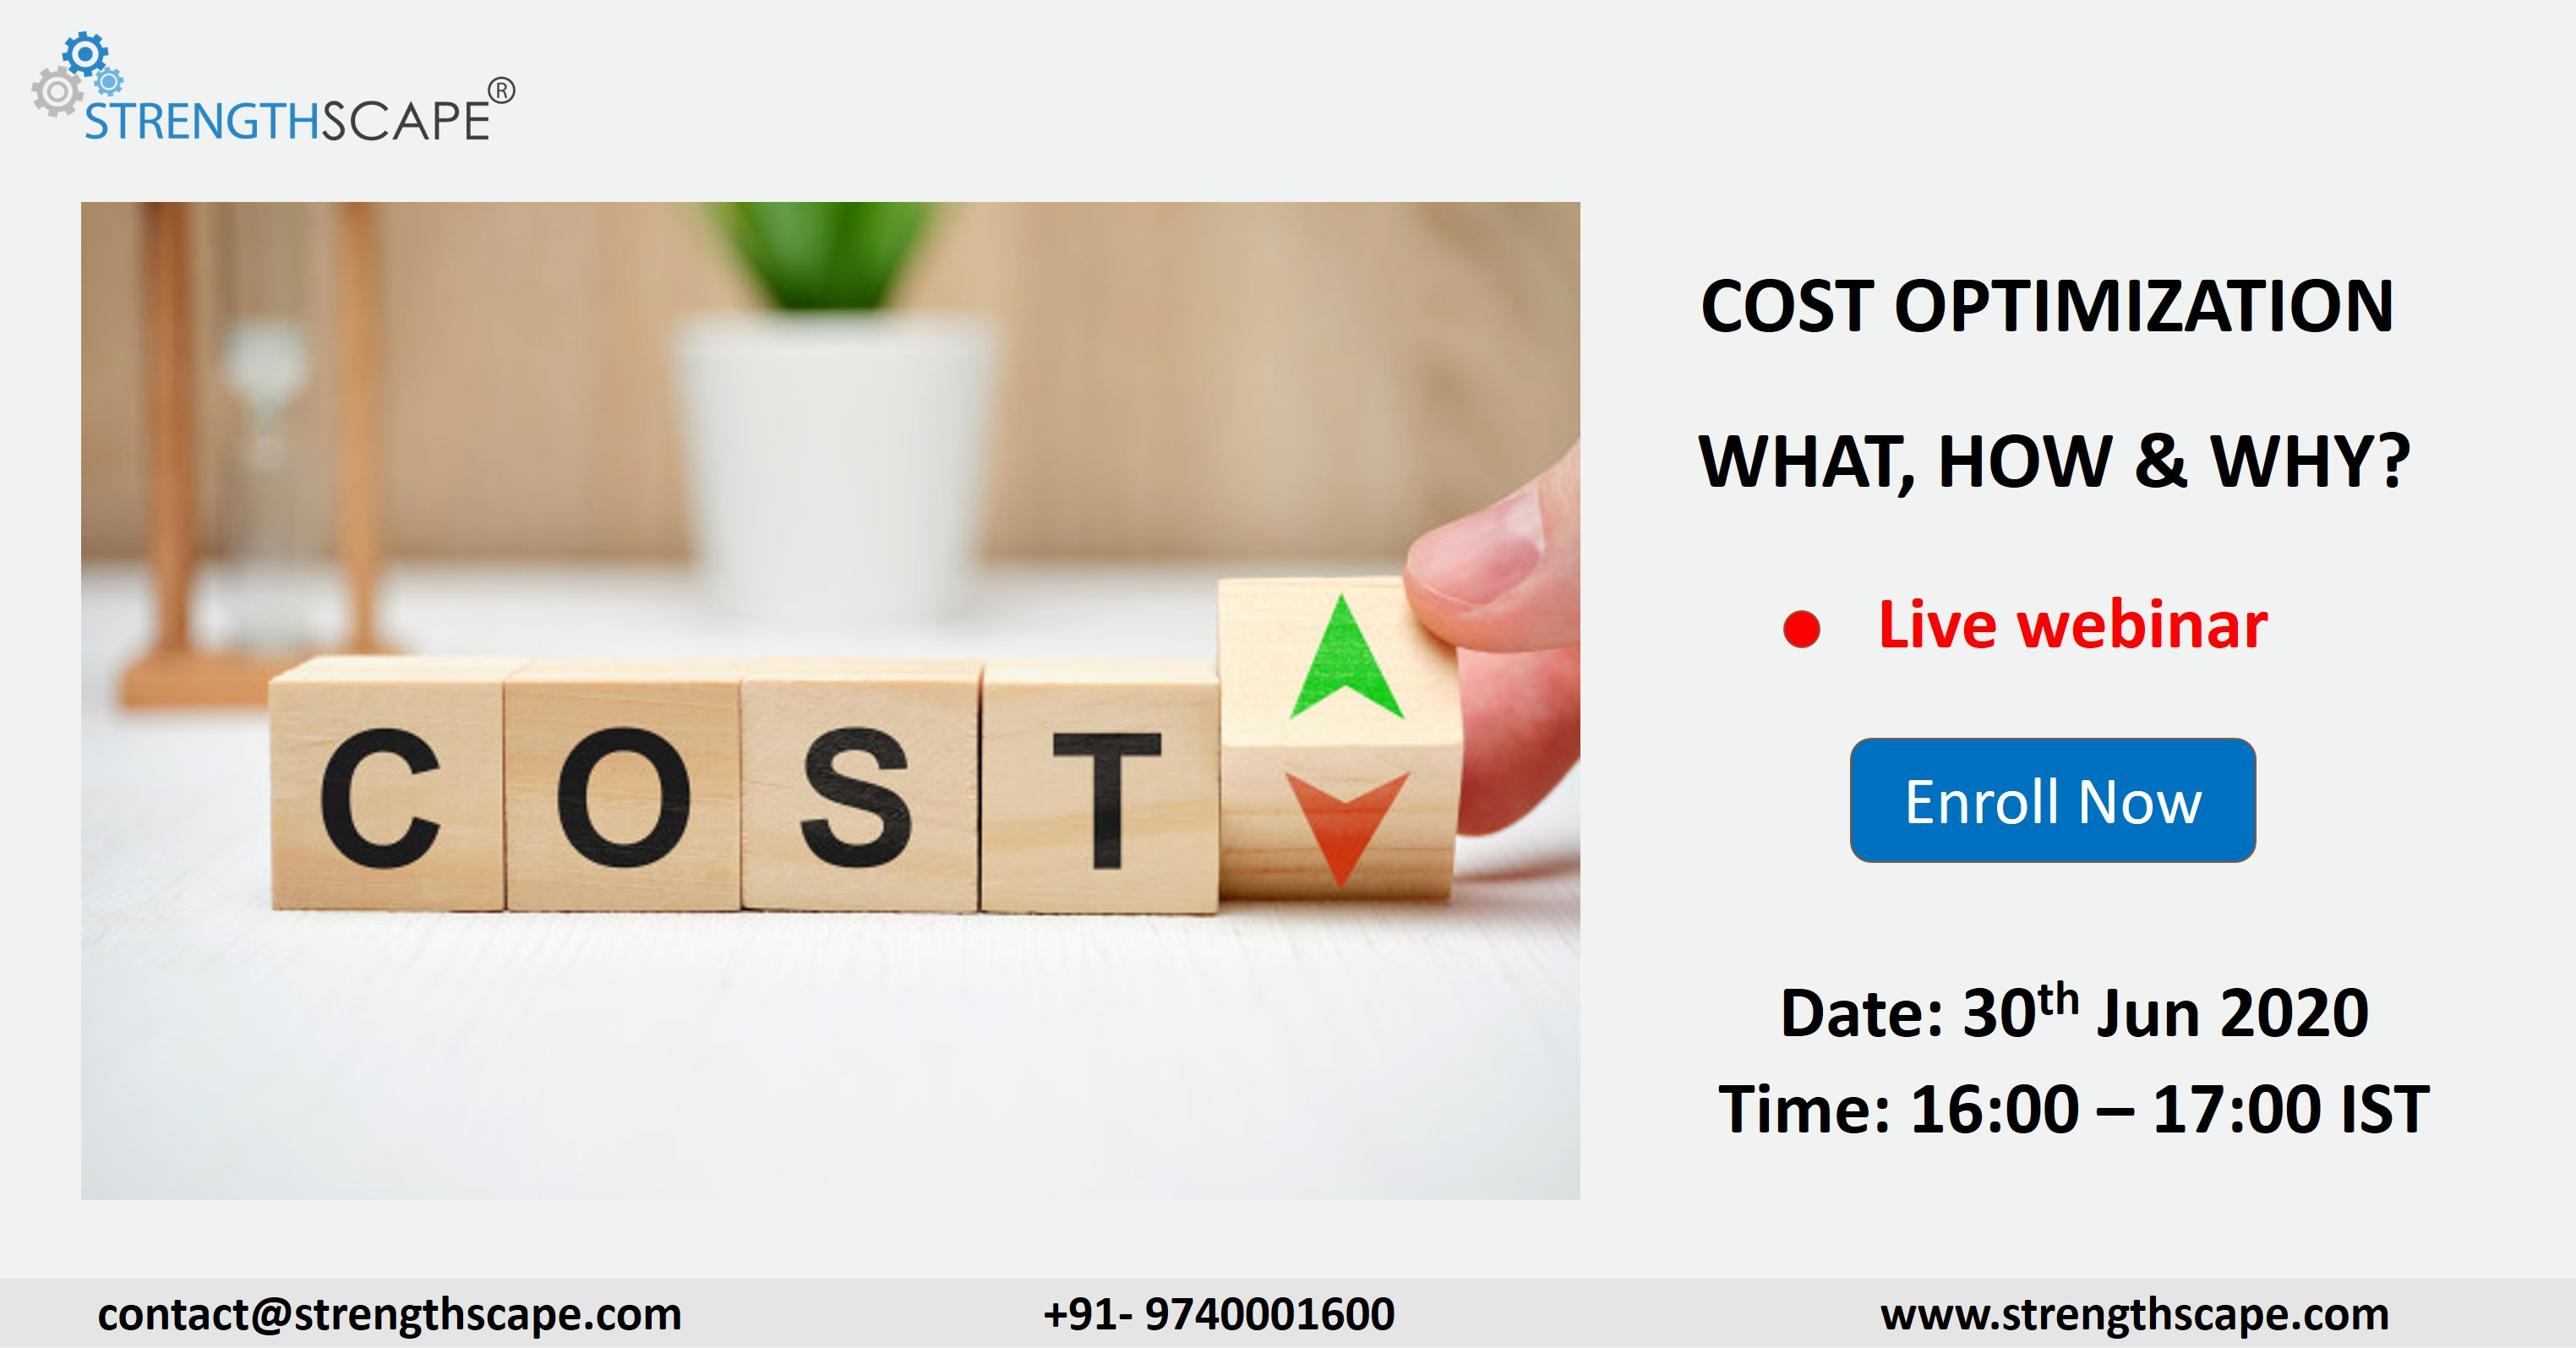 [Webinar] Cost Optimization – What, How & Why?